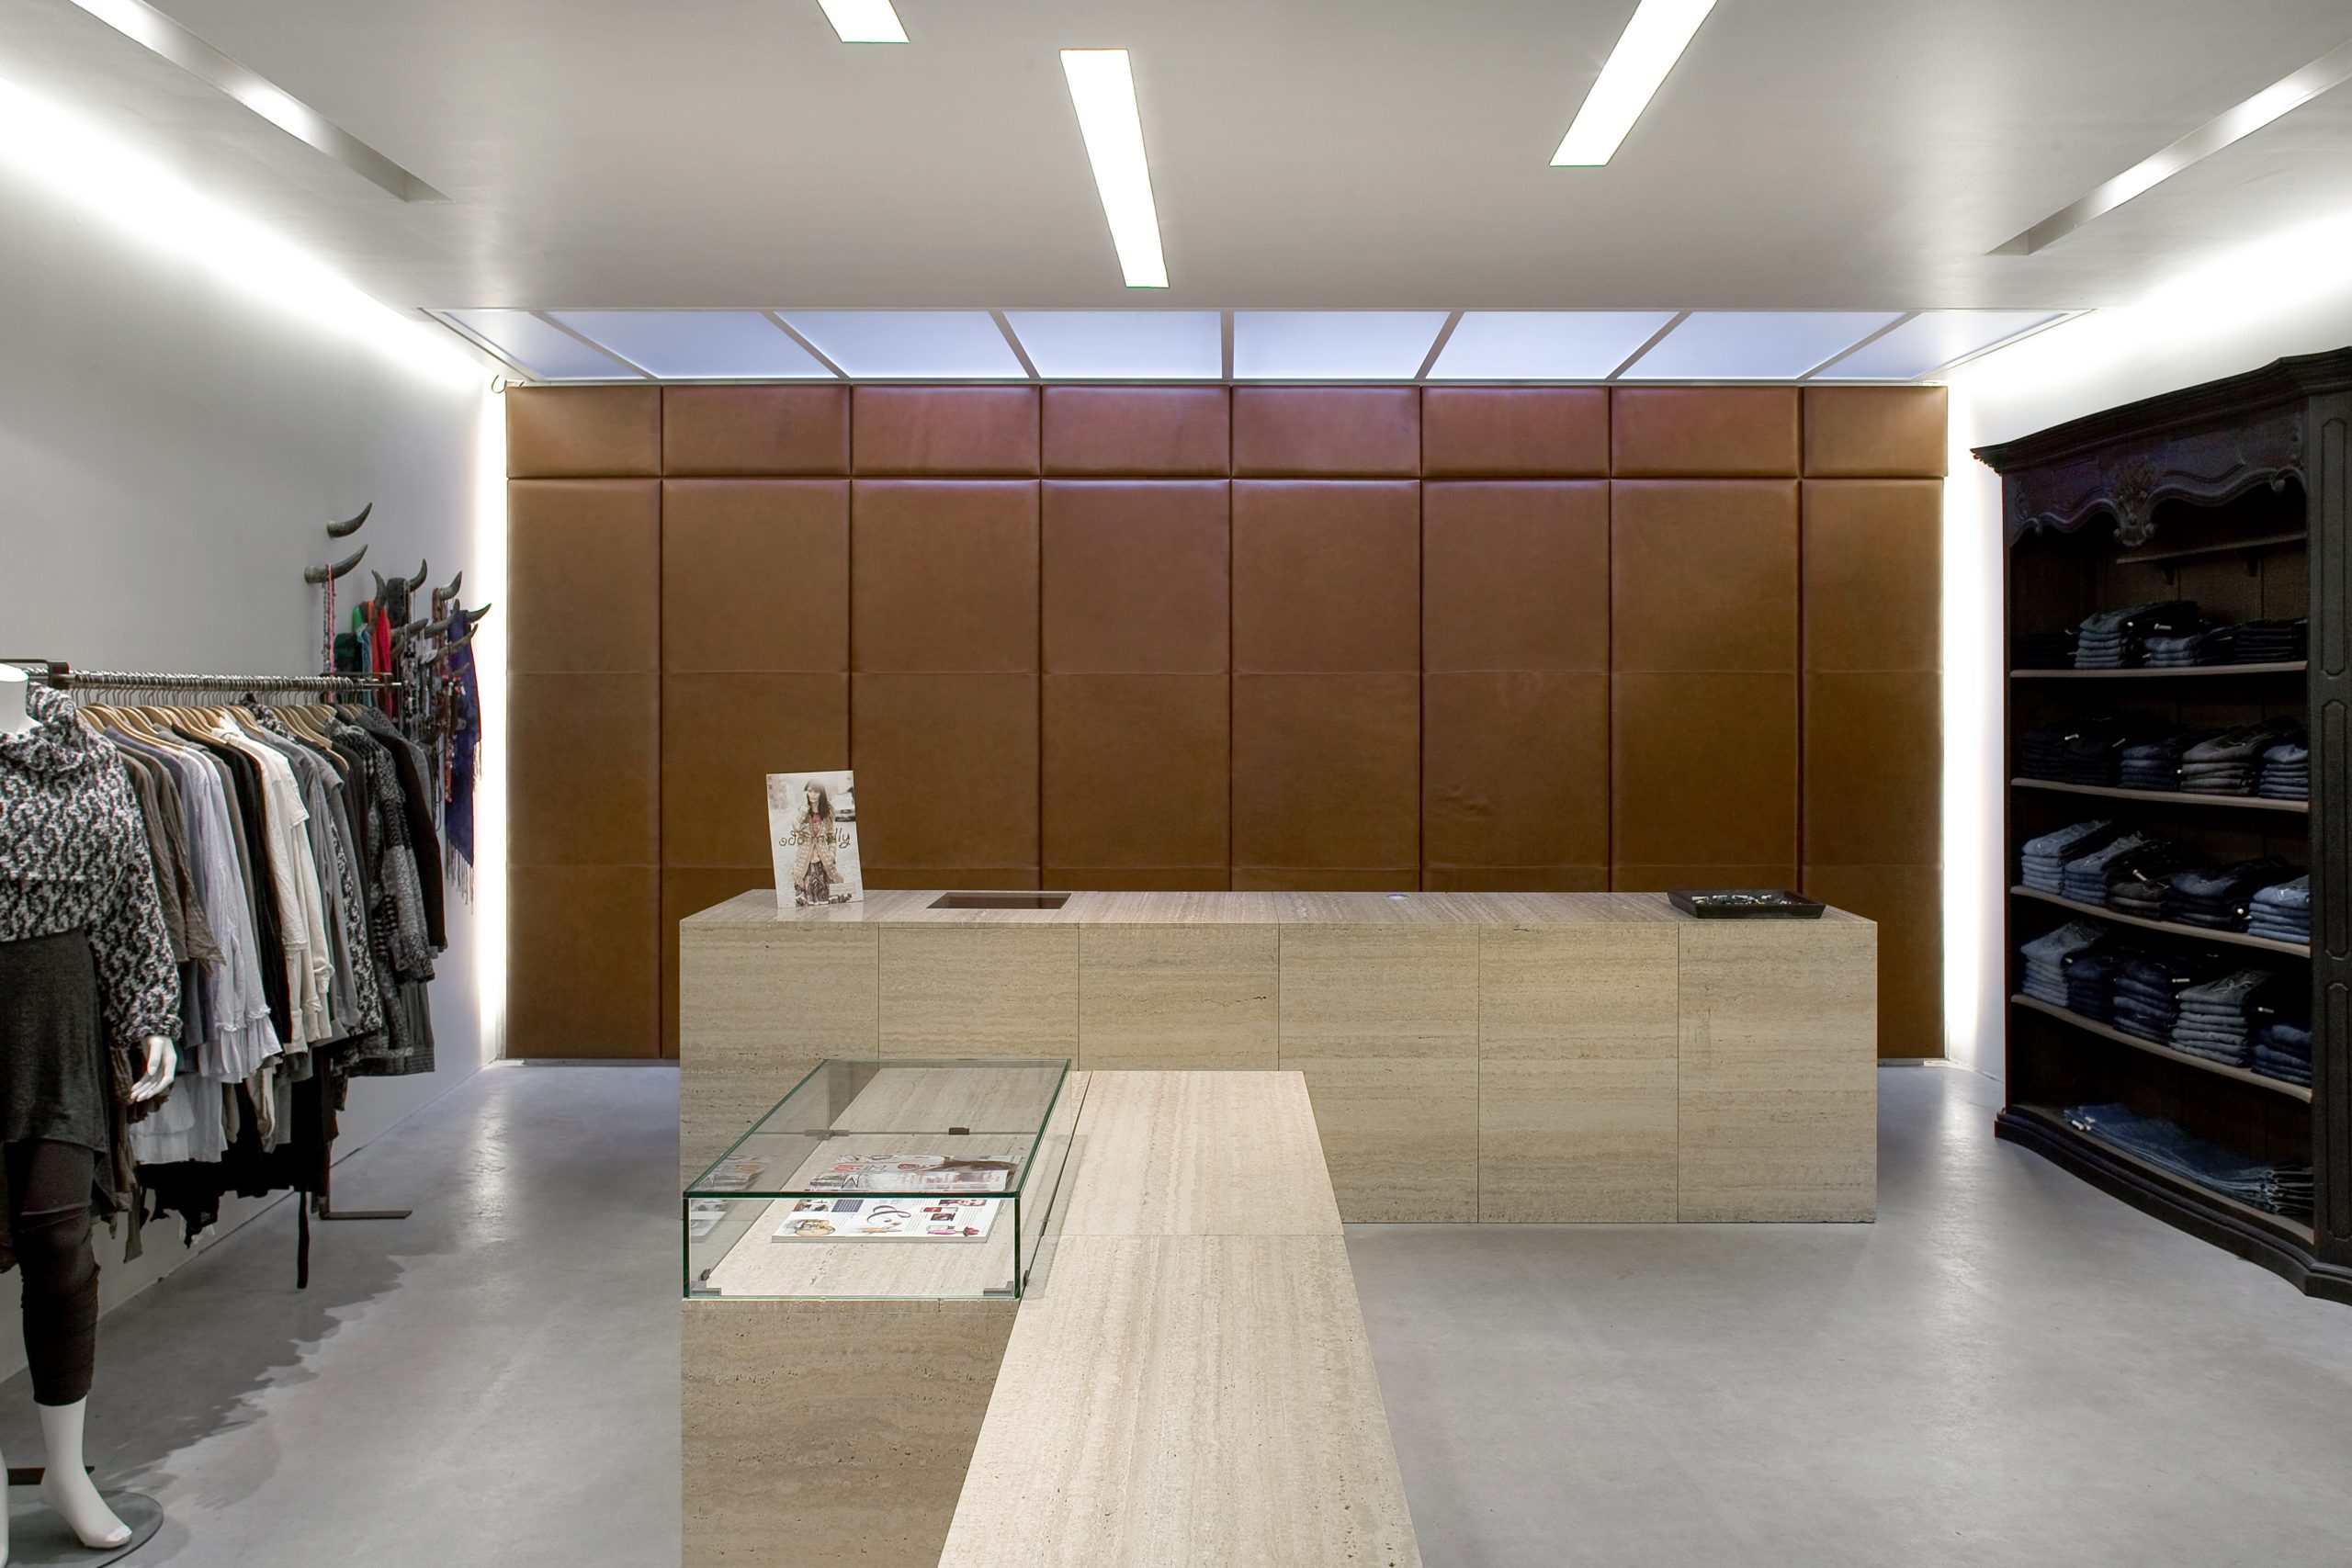 Lodz store counter